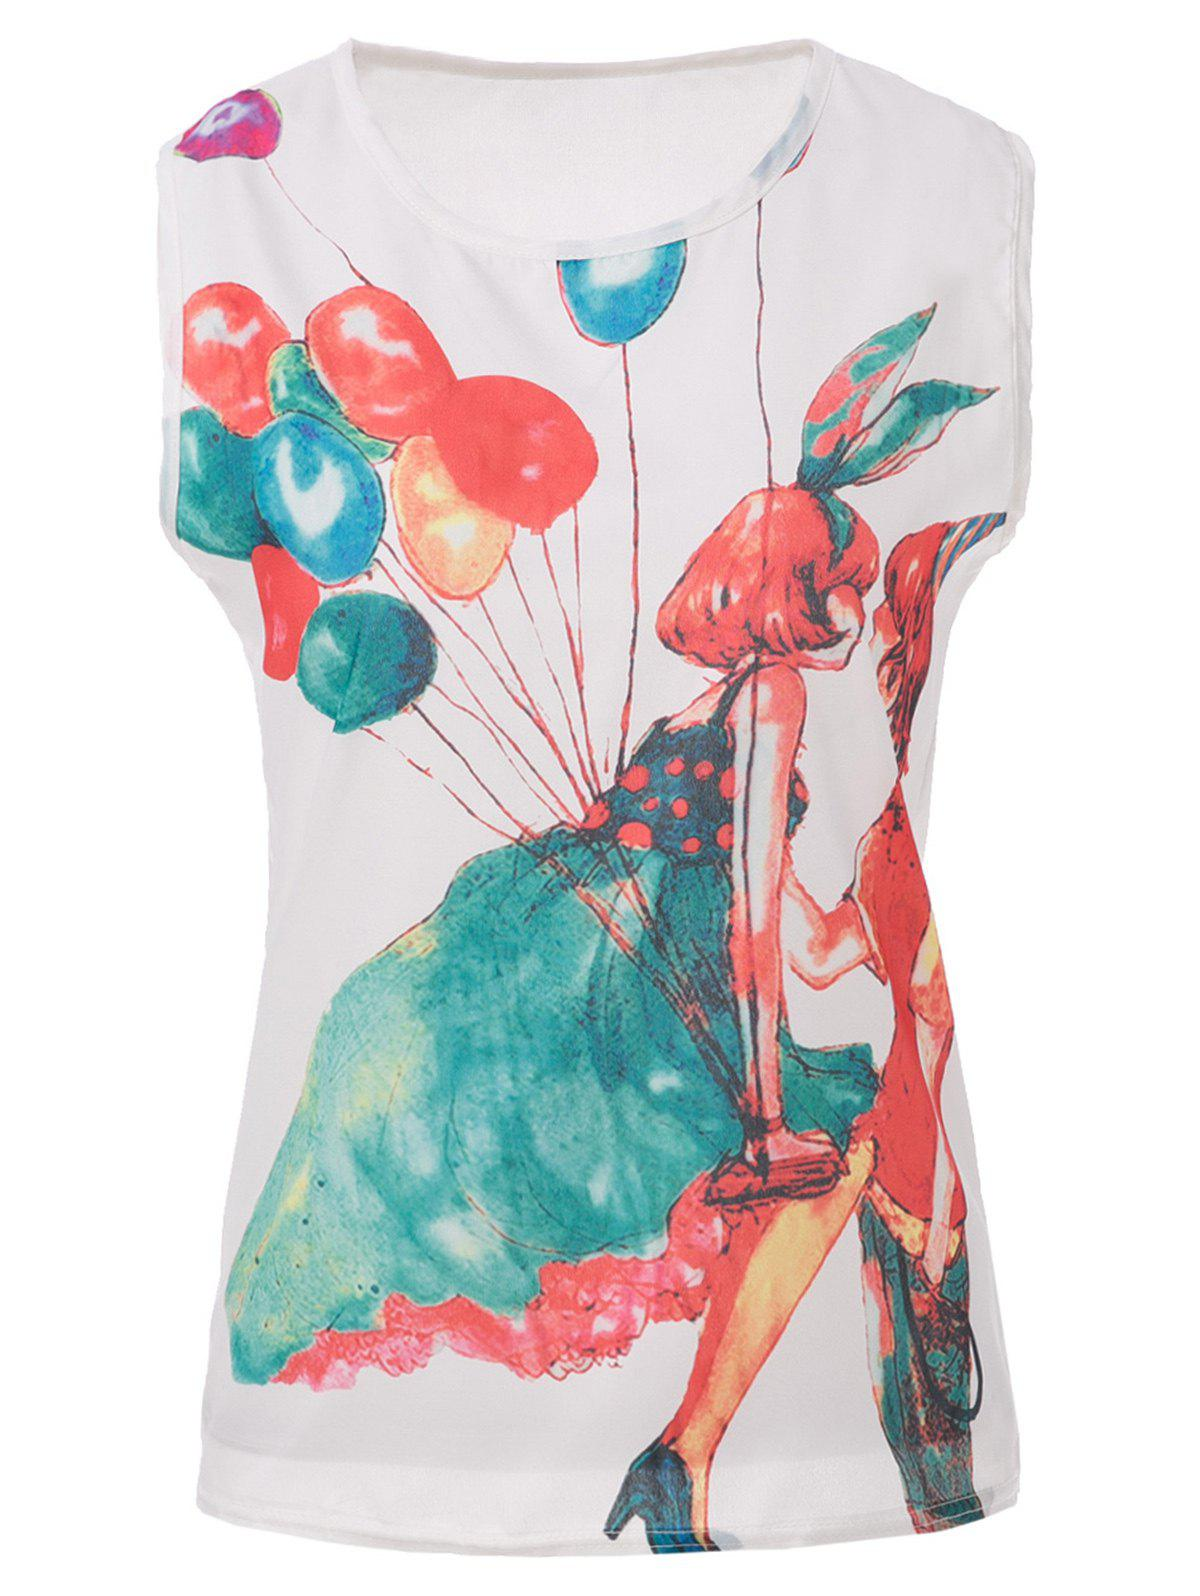 Latest Fashionable Scoop Collar Balloon Girl Print Chiffon Women's Tank Top